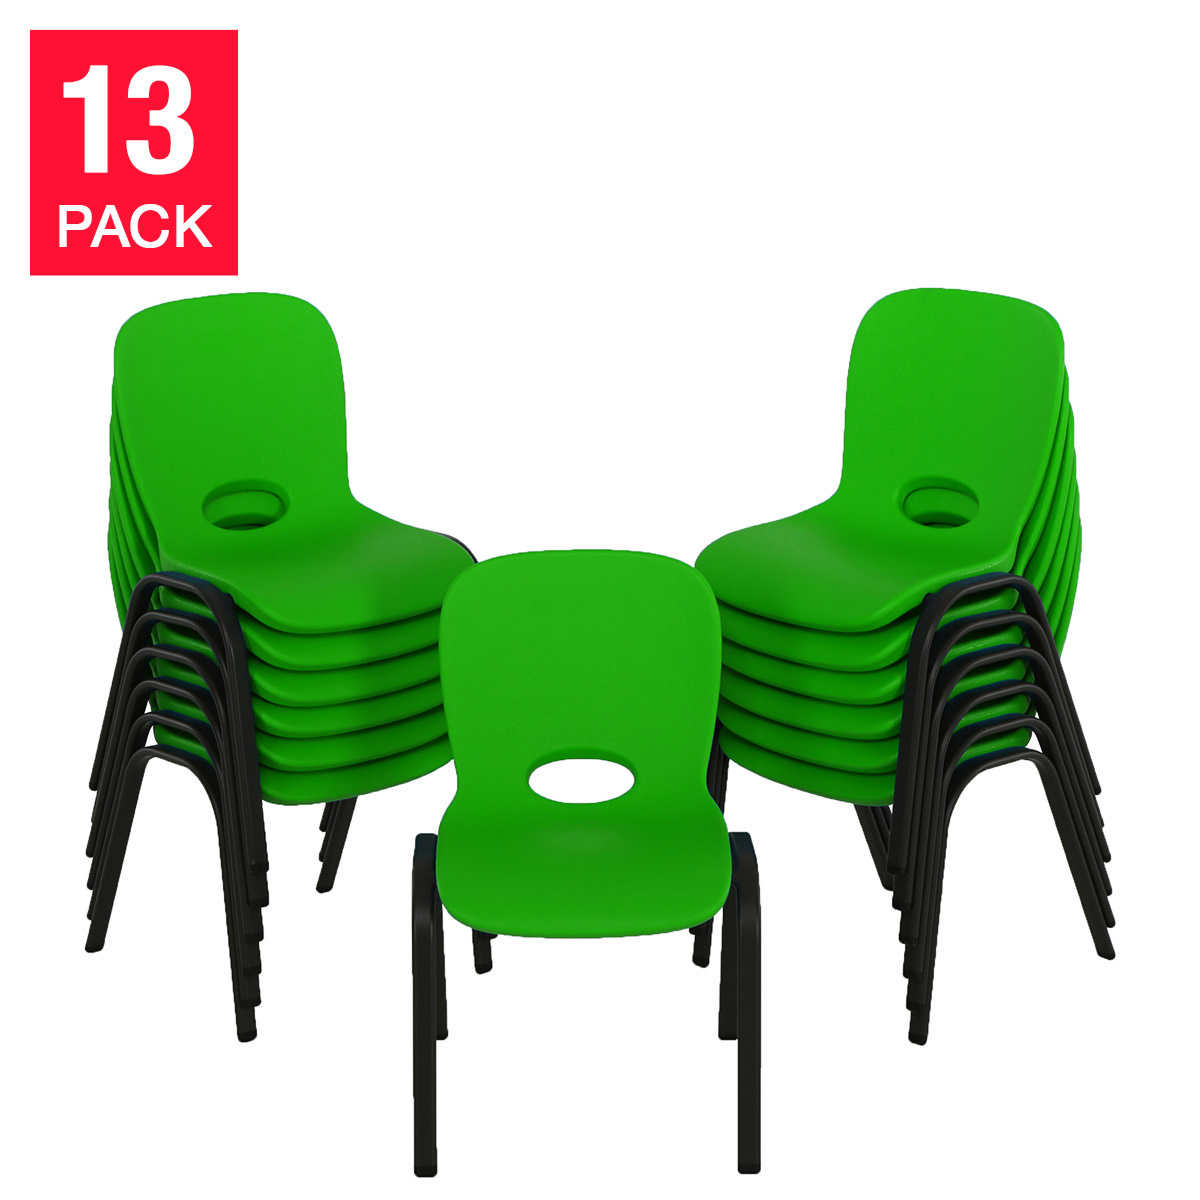 Lifetime  Kids Stacking Chair 13pk   LimeClassroom Furniture   Costco. Green Plastic Stack Chairs. Home Design Ideas